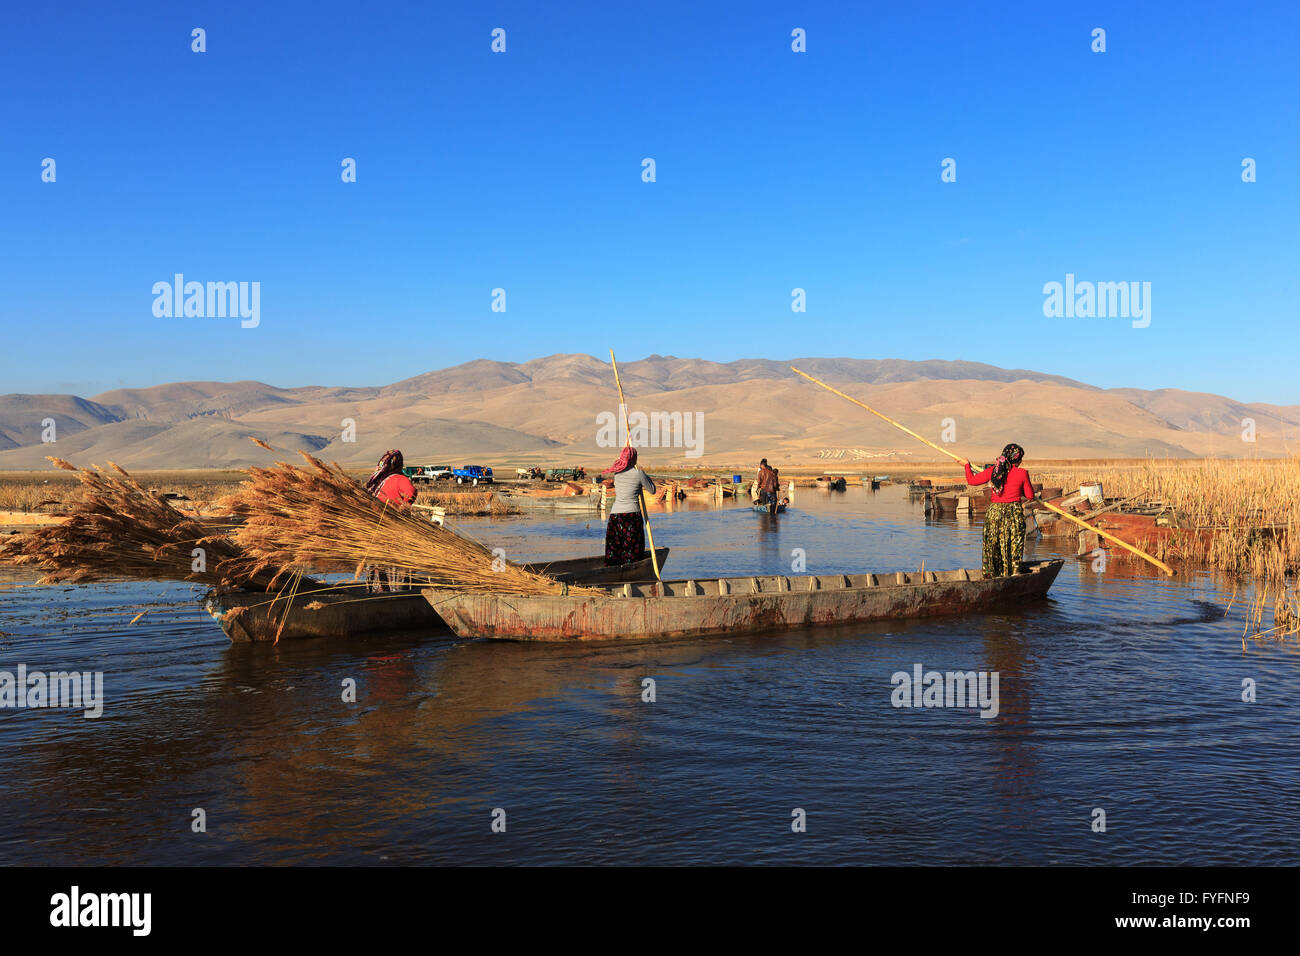 Woman workers harvest reeds and bulrush from the Lake Eber in Afyon,Turkey and sells them to the matting industry. - Stock Image